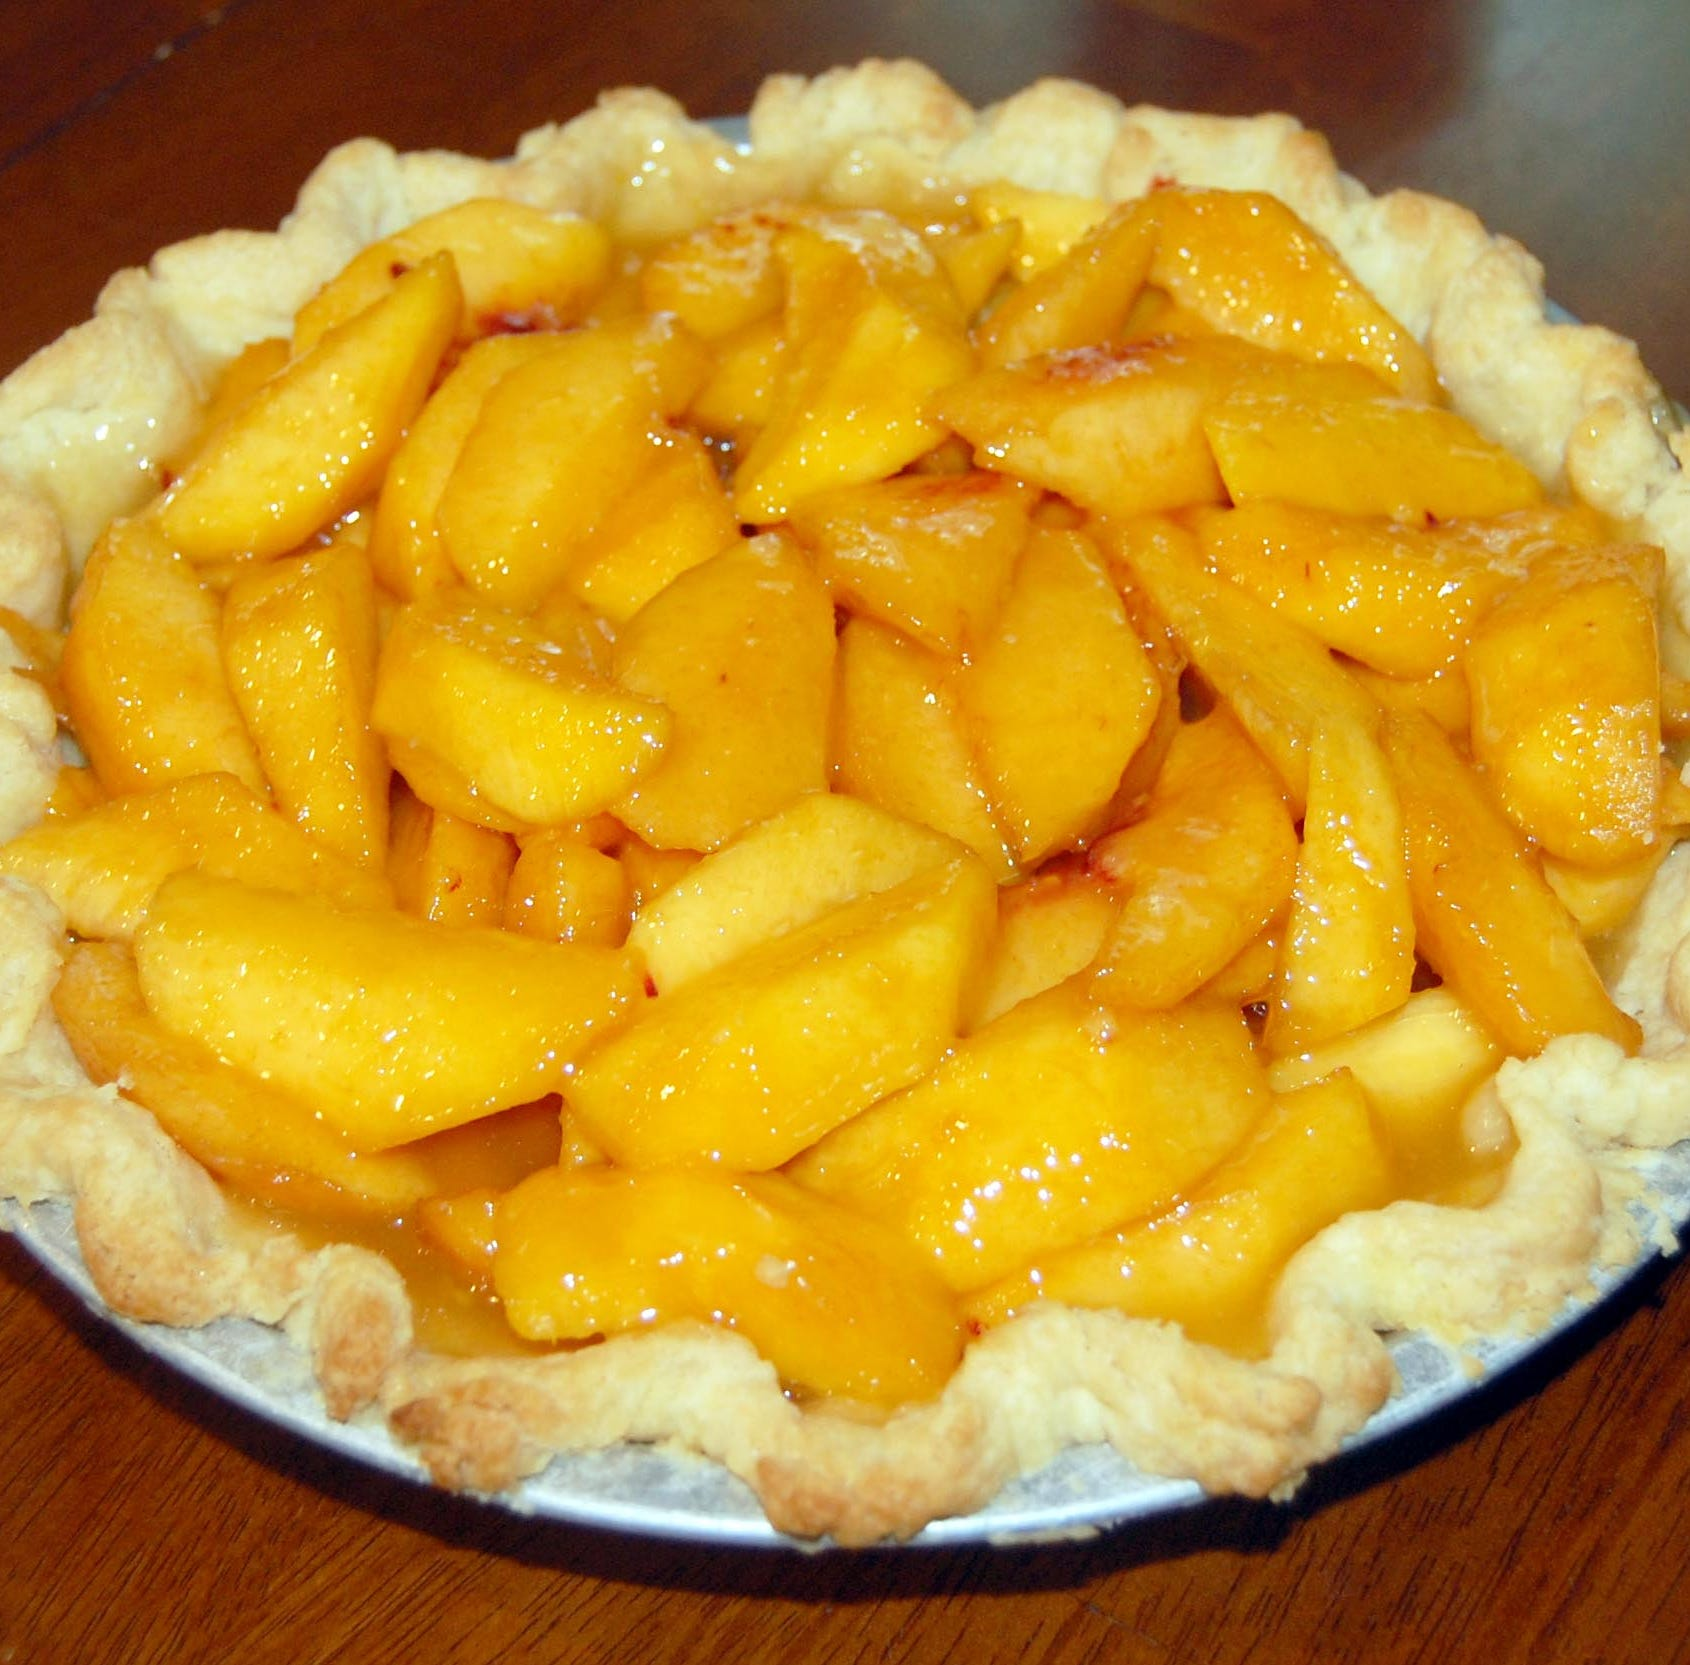 Peach pie recipe simple and delicious | Sweet & Savory